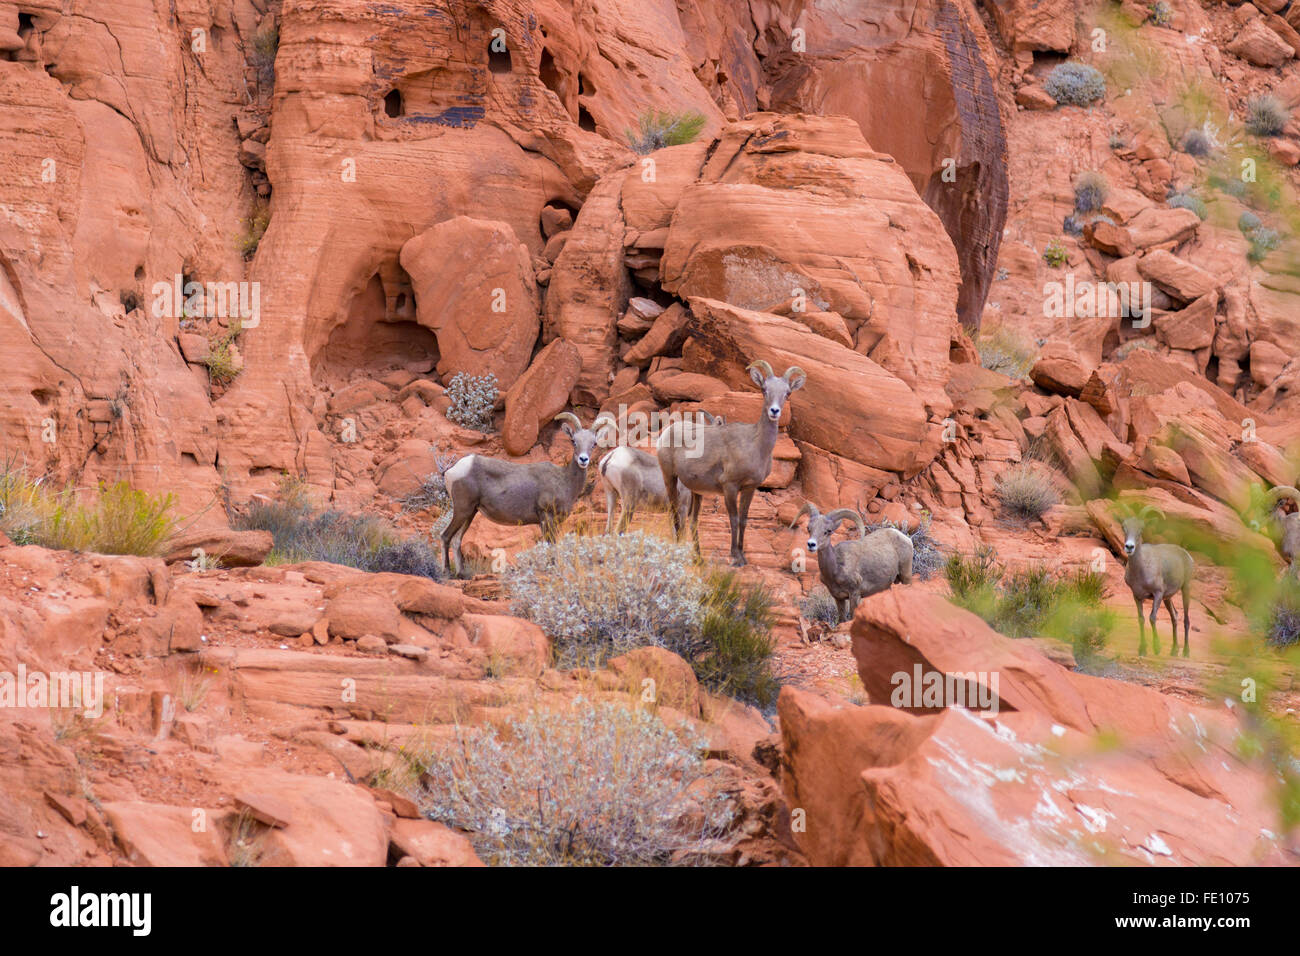 Desert big horn sheep in Valley of Fire State Park, Nevada, USA - Stock Image